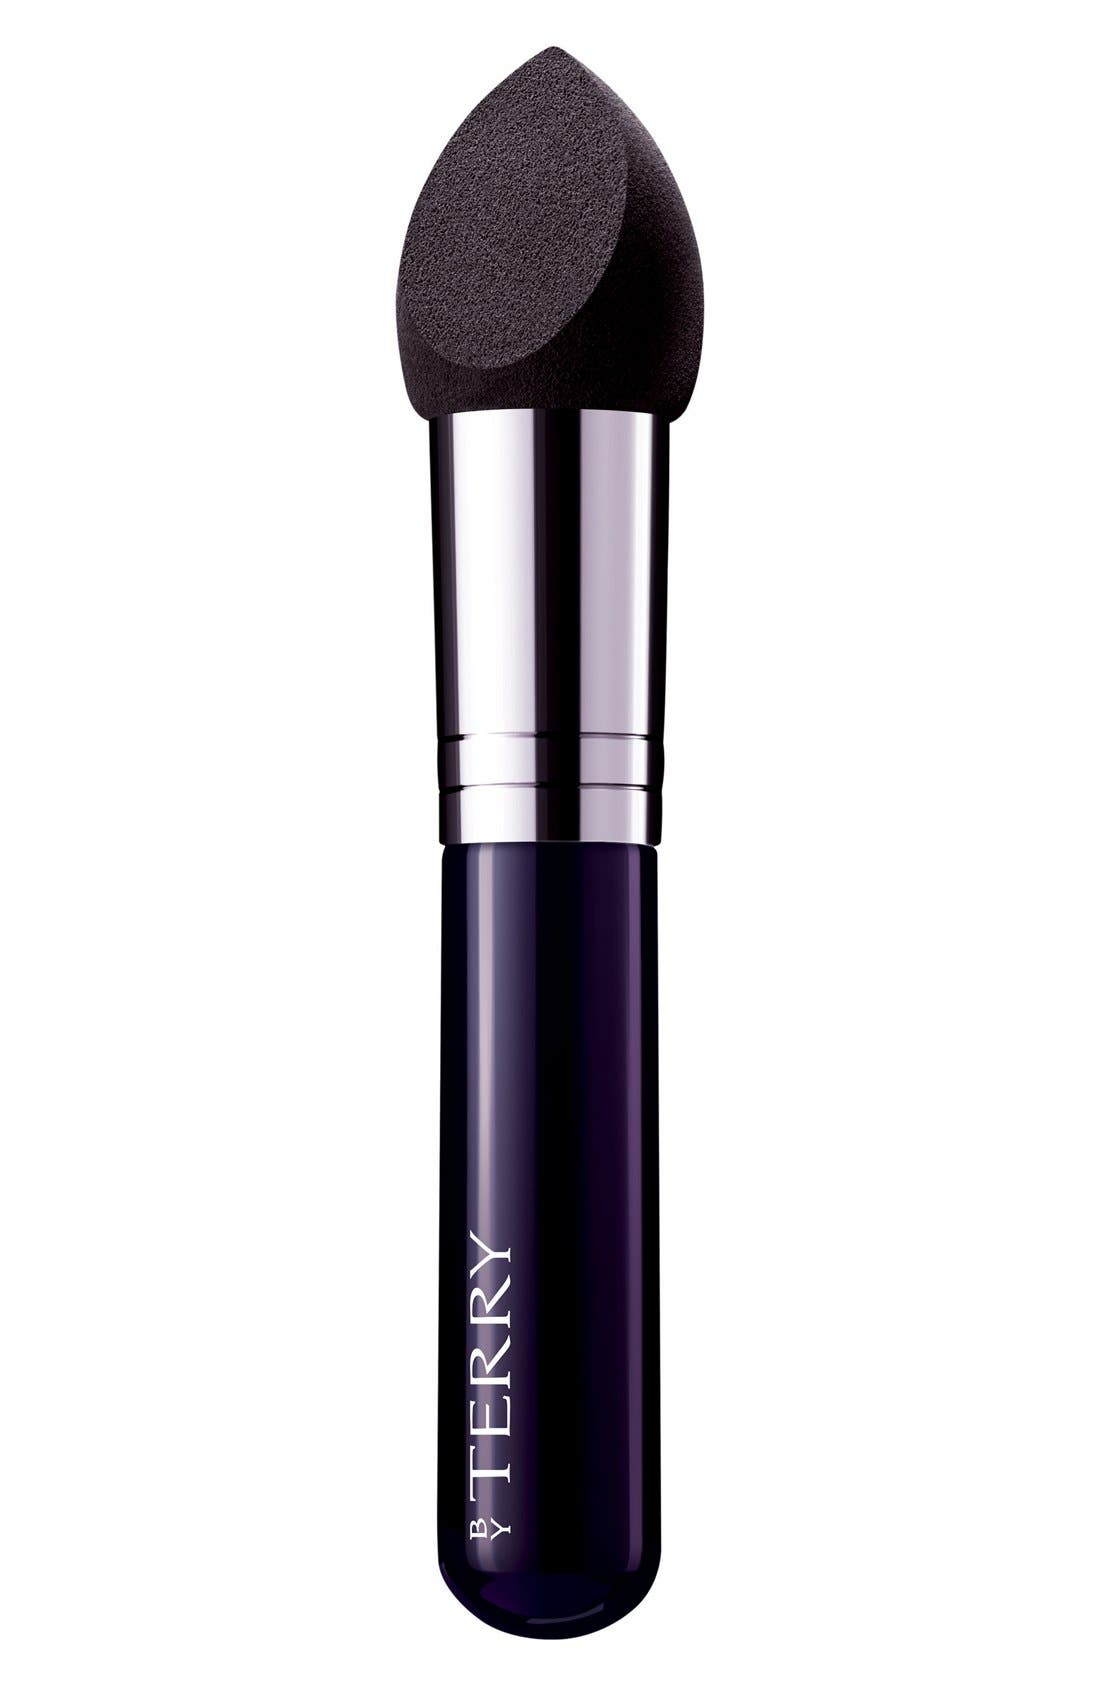 SPACE.NK.apothecary By Terry Sponge Foundation Brush